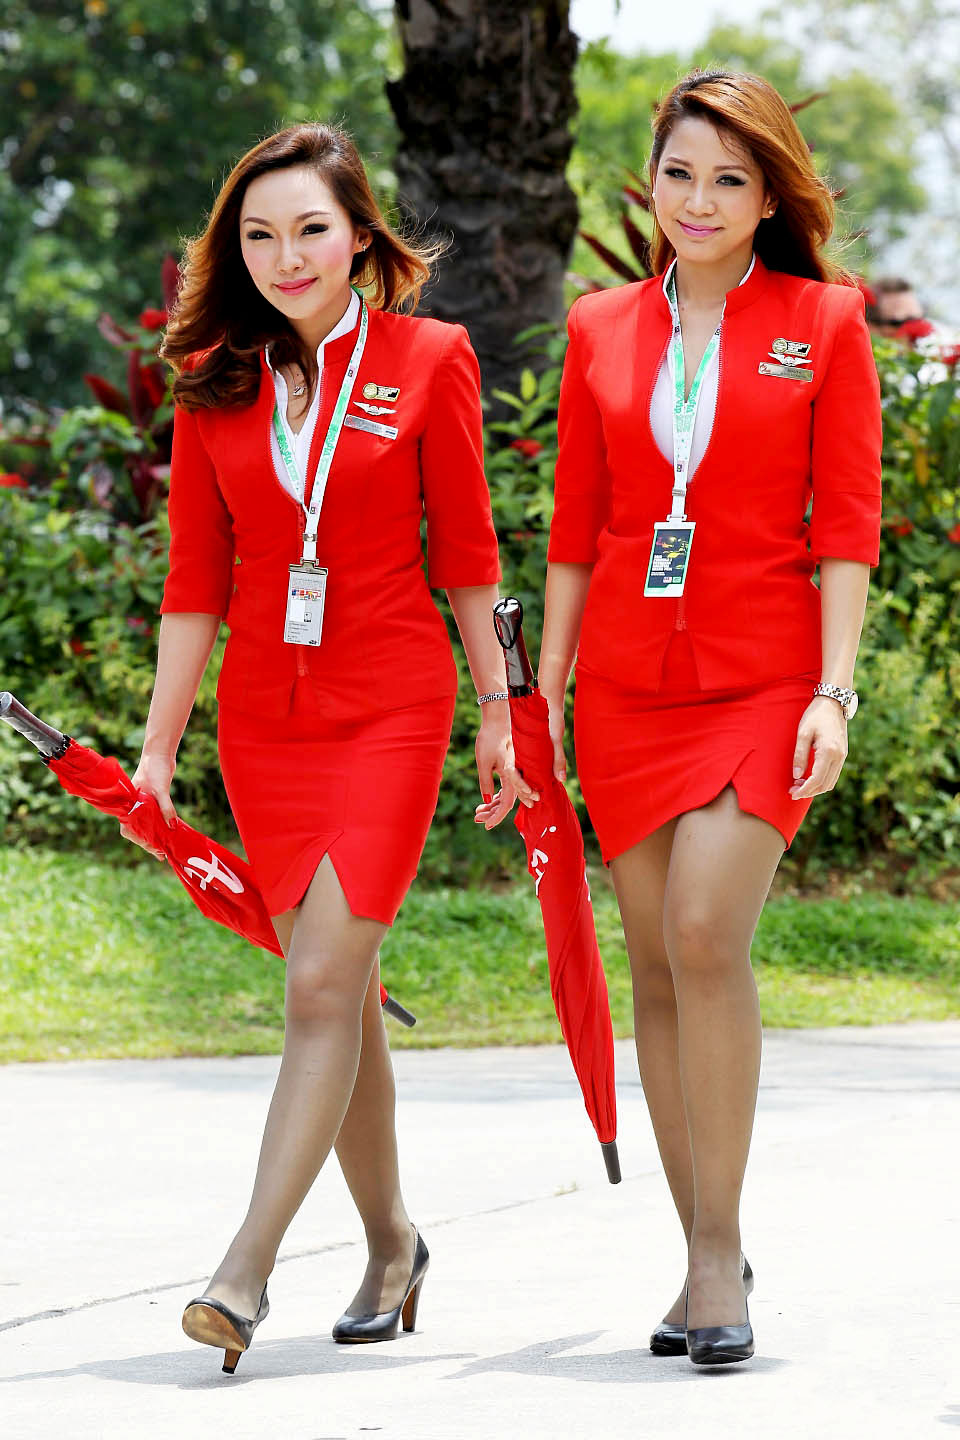 Air Asia Girls in Formula One